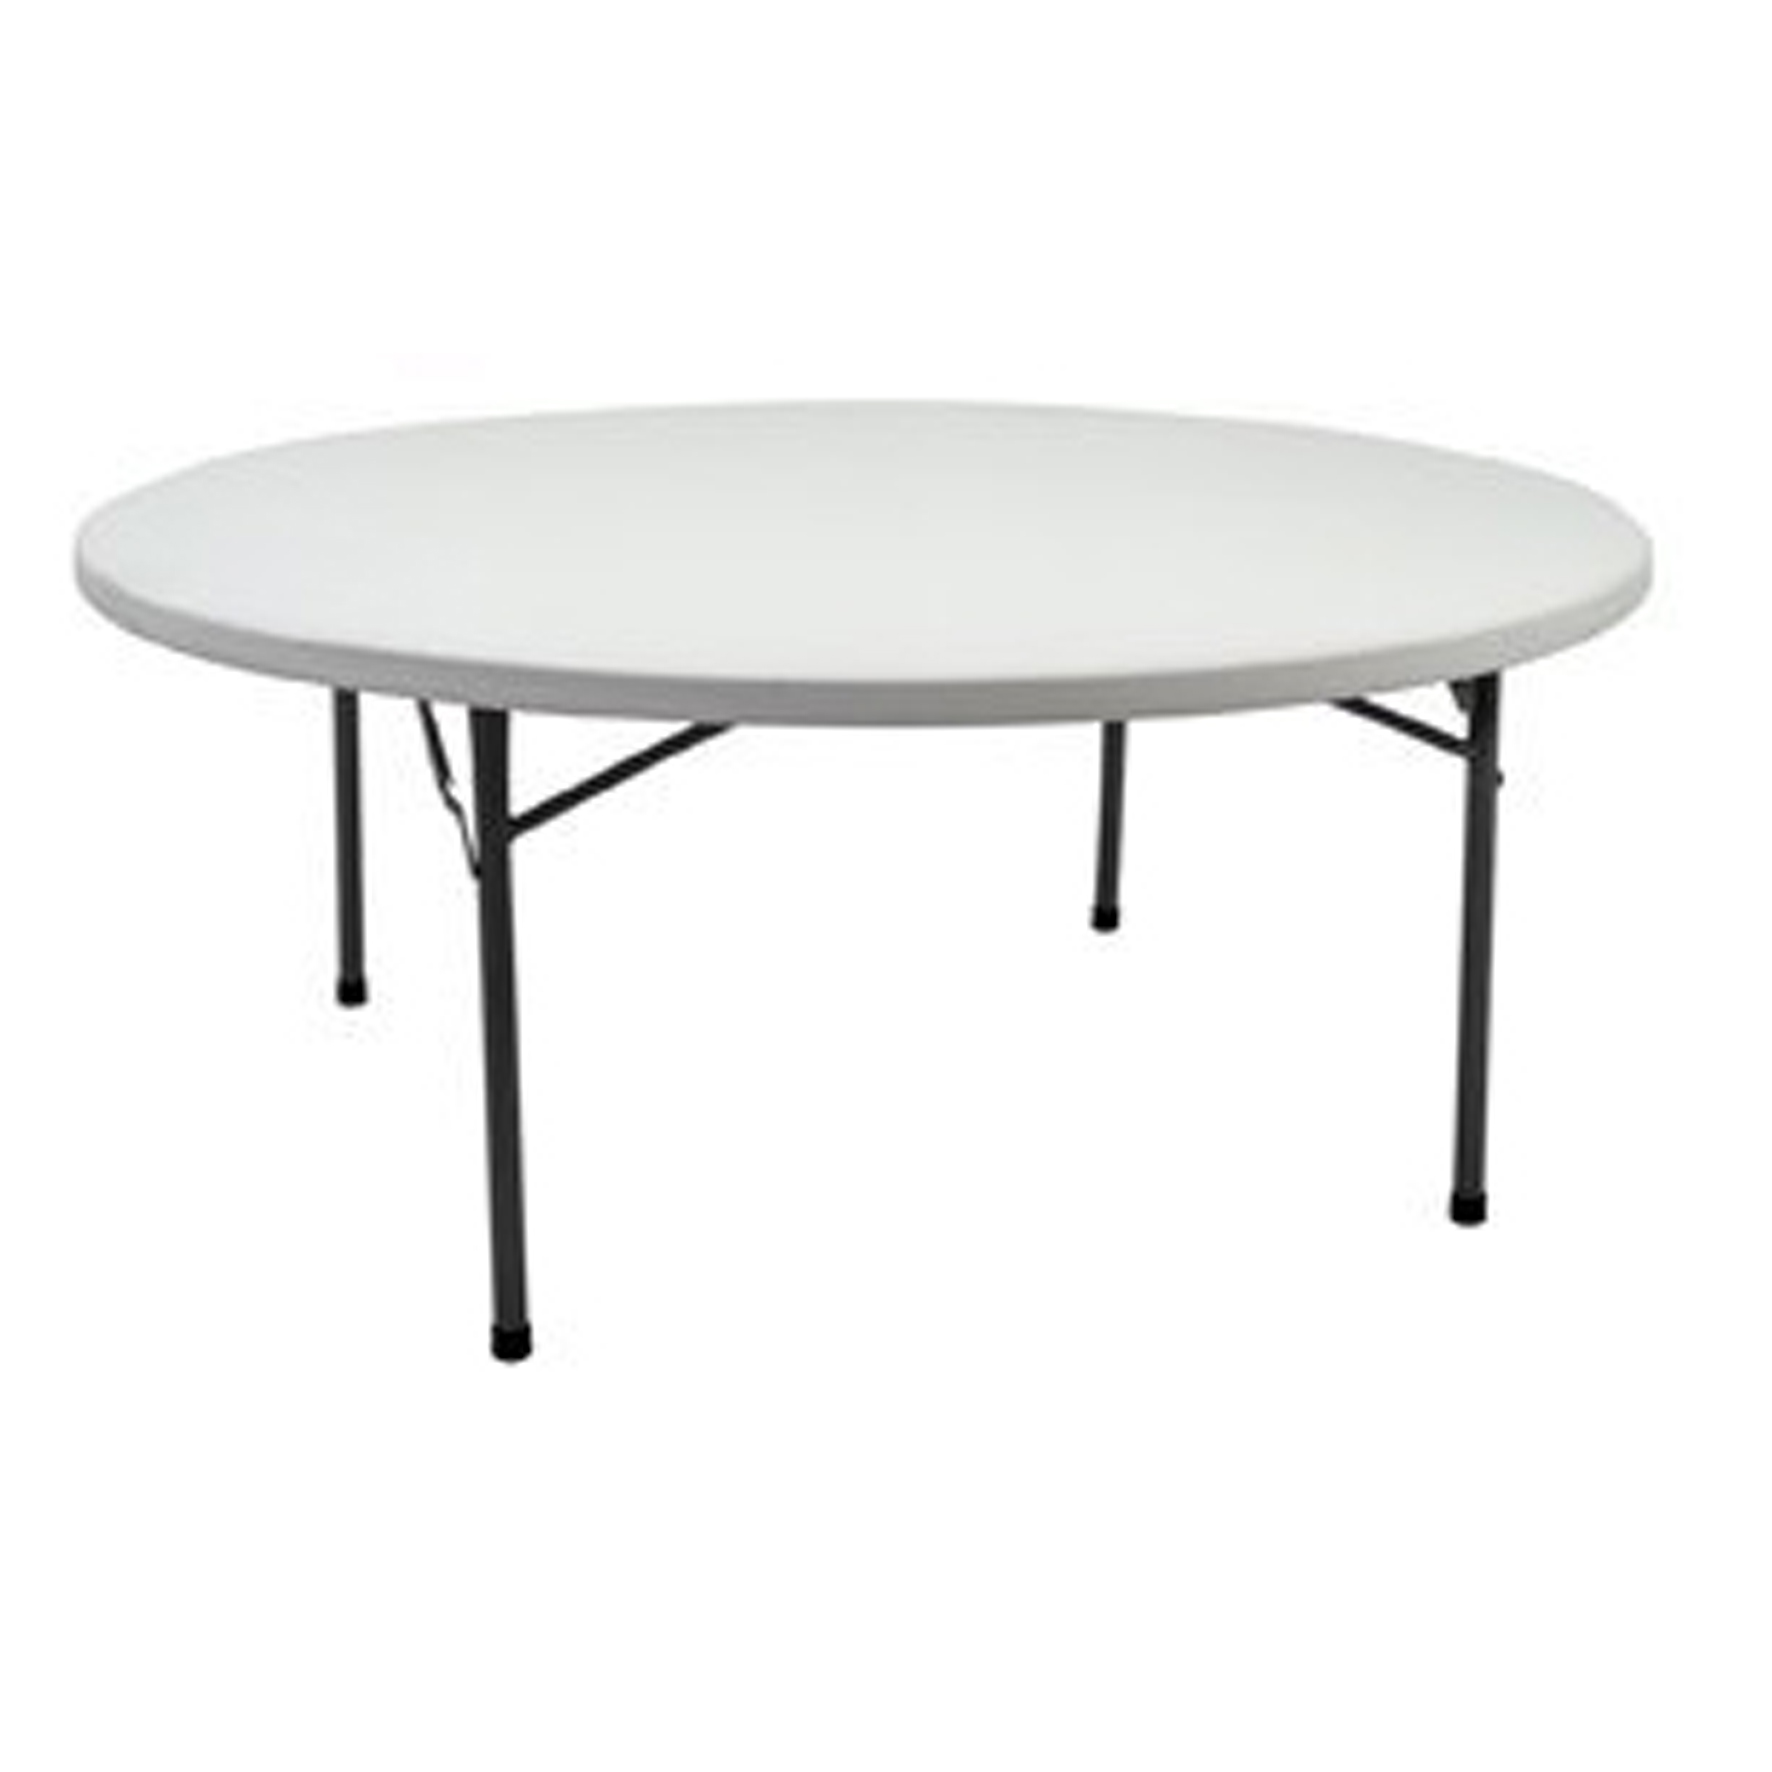 Round Coffee Tables Cape Town: Tables